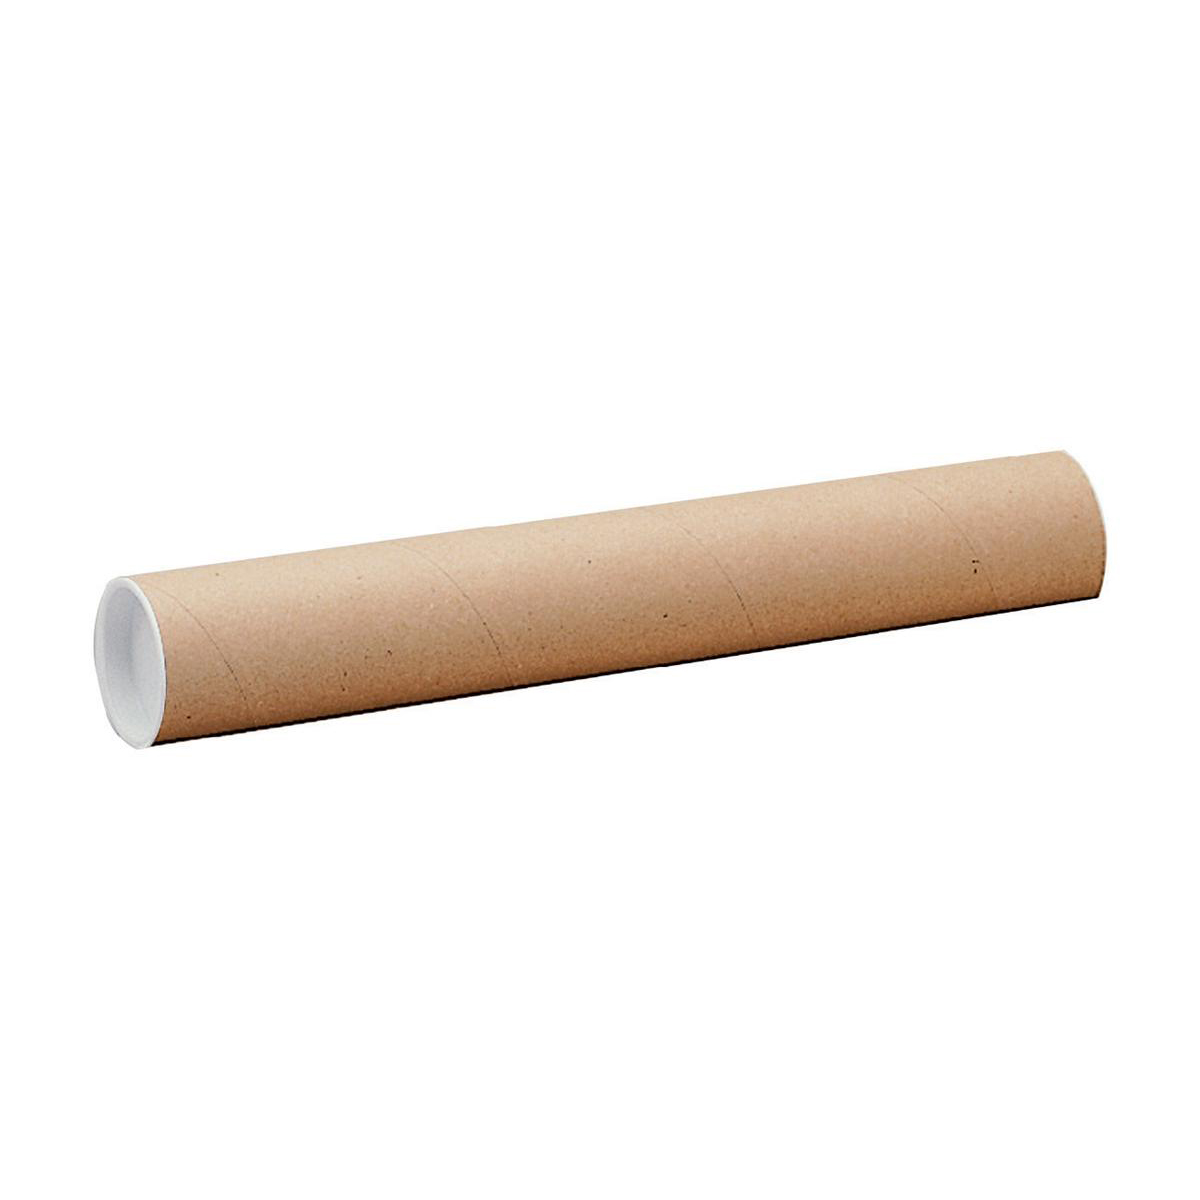 Postal Tube Cardboard with Plastic End Caps A0 L890xDia.50mm RBL10521  Pack 25